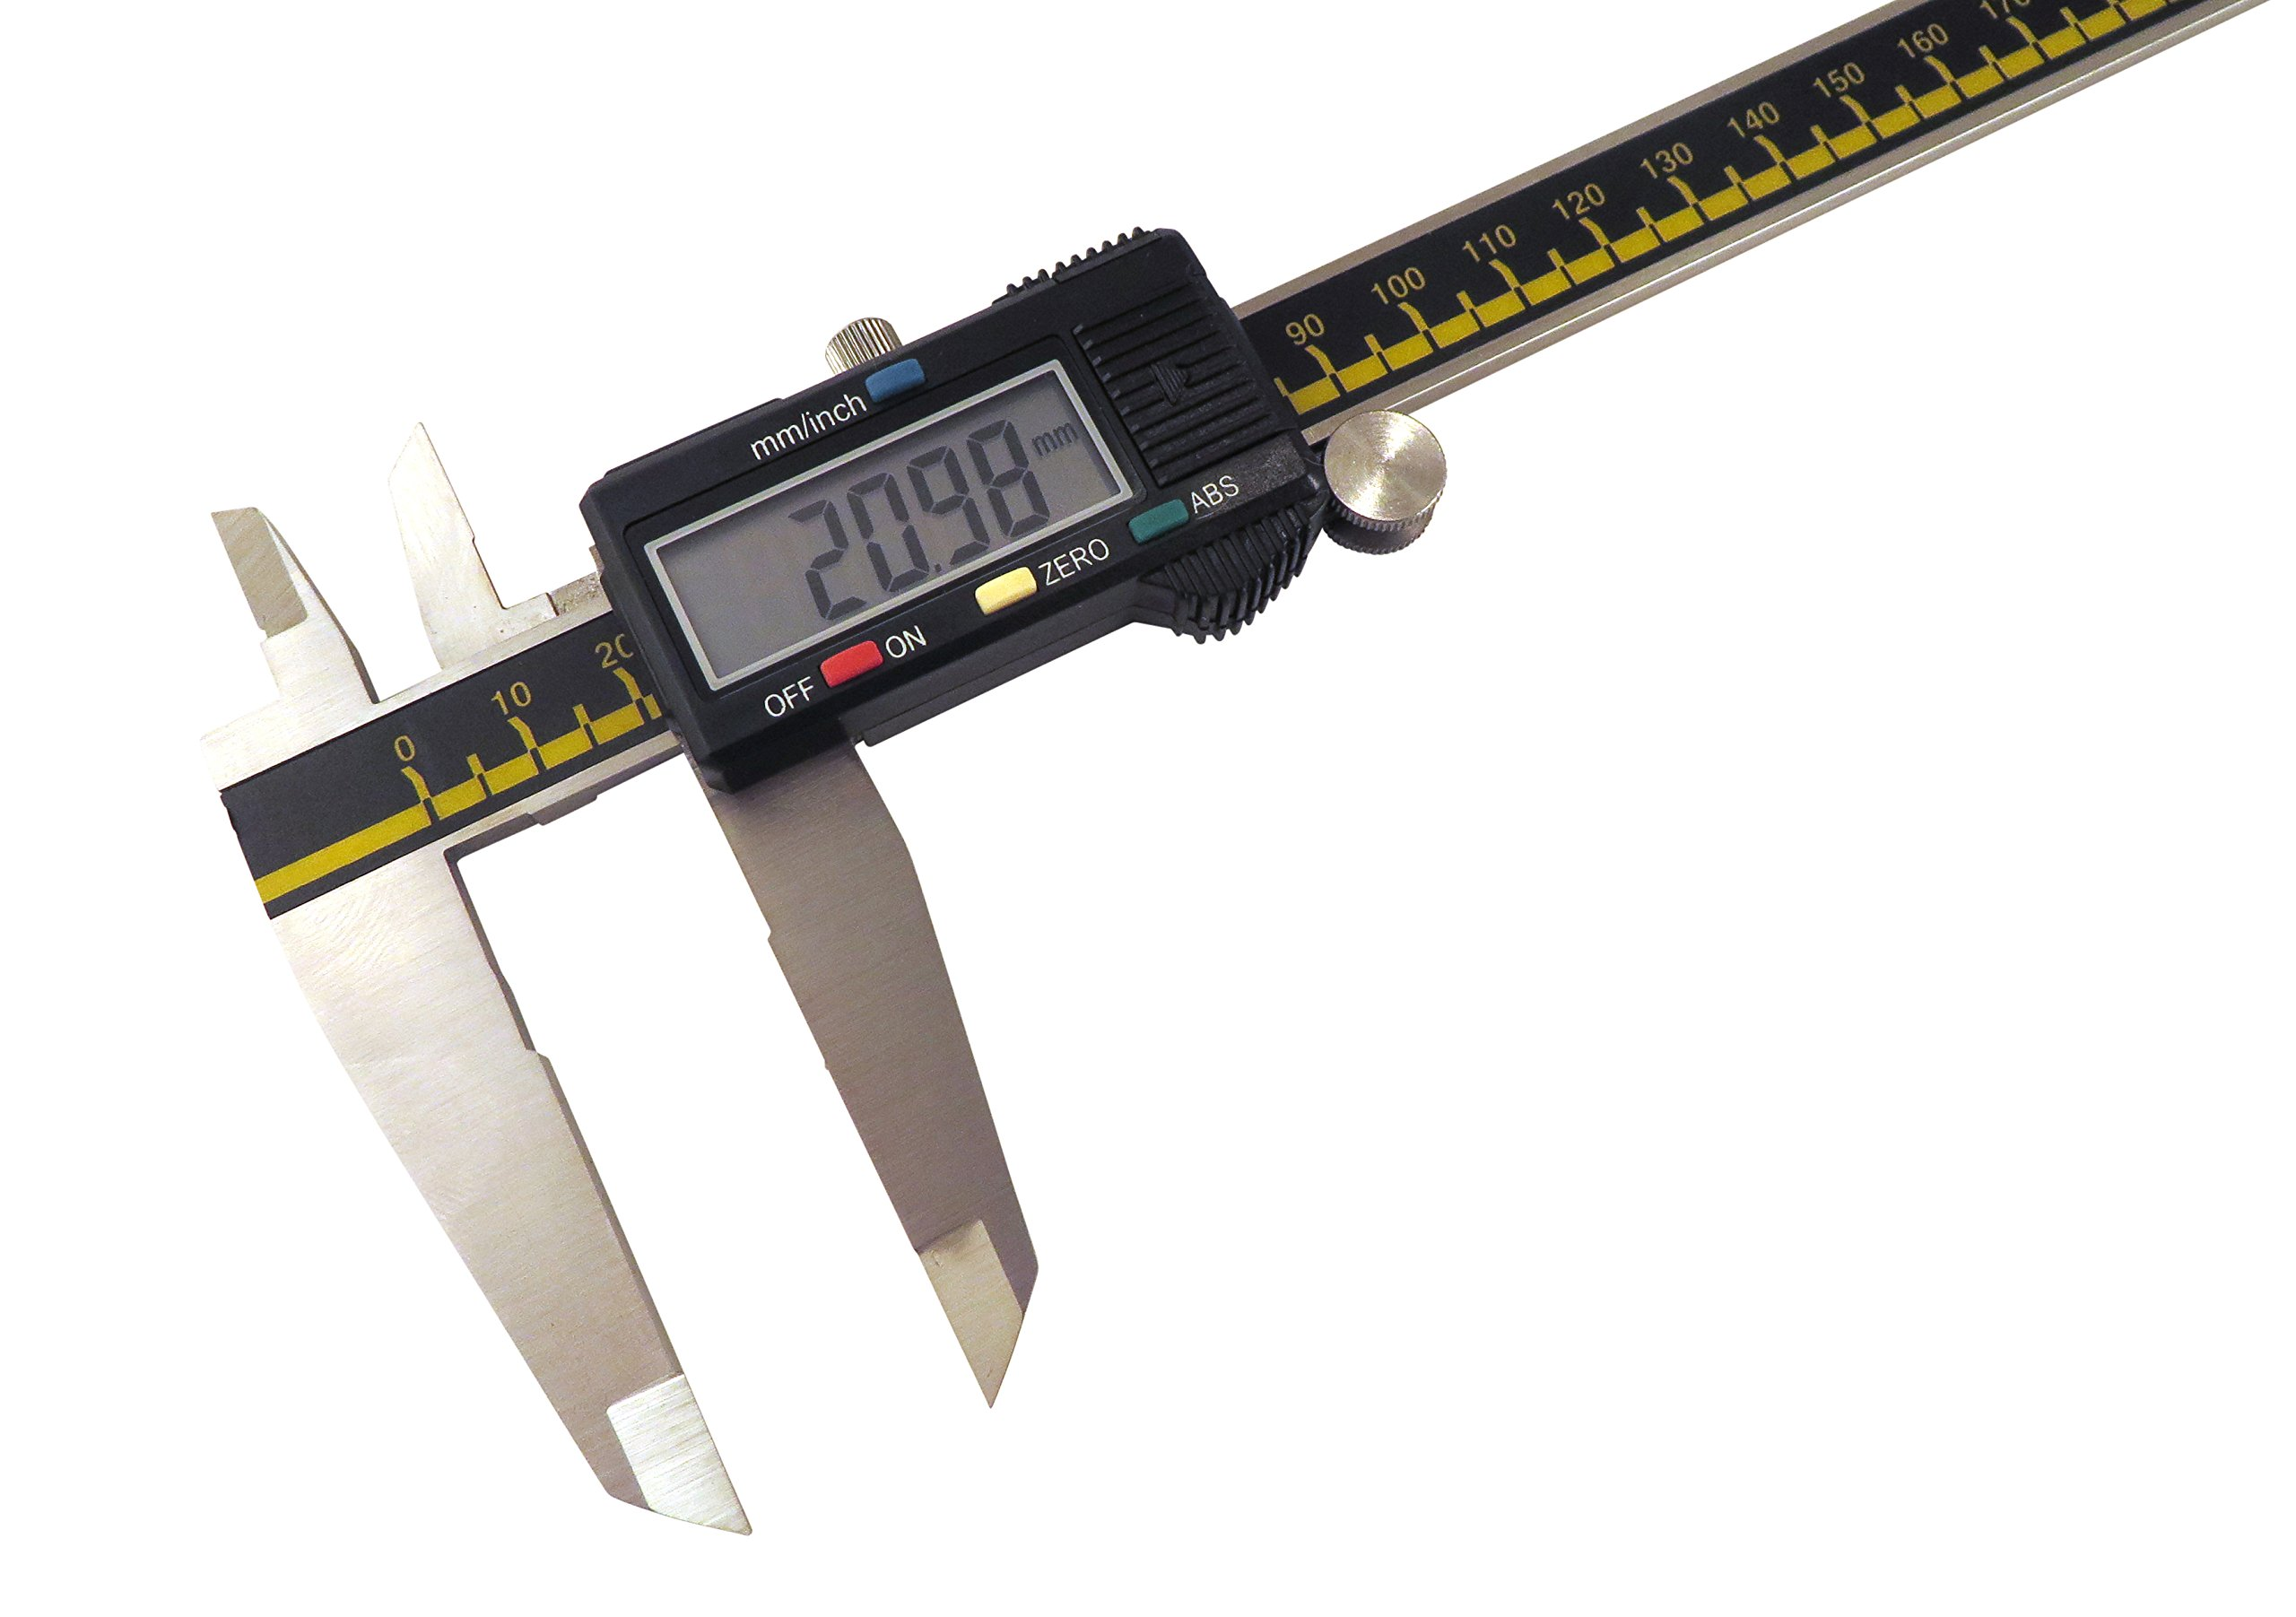 """Absolute Digital Caliper 12"""" / 300 mm Digital Calipers Accurate to 0.0015""""/12"""" Hardened Stainless Steel ODC-12 by Taylor Toolworks (Image #2)"""